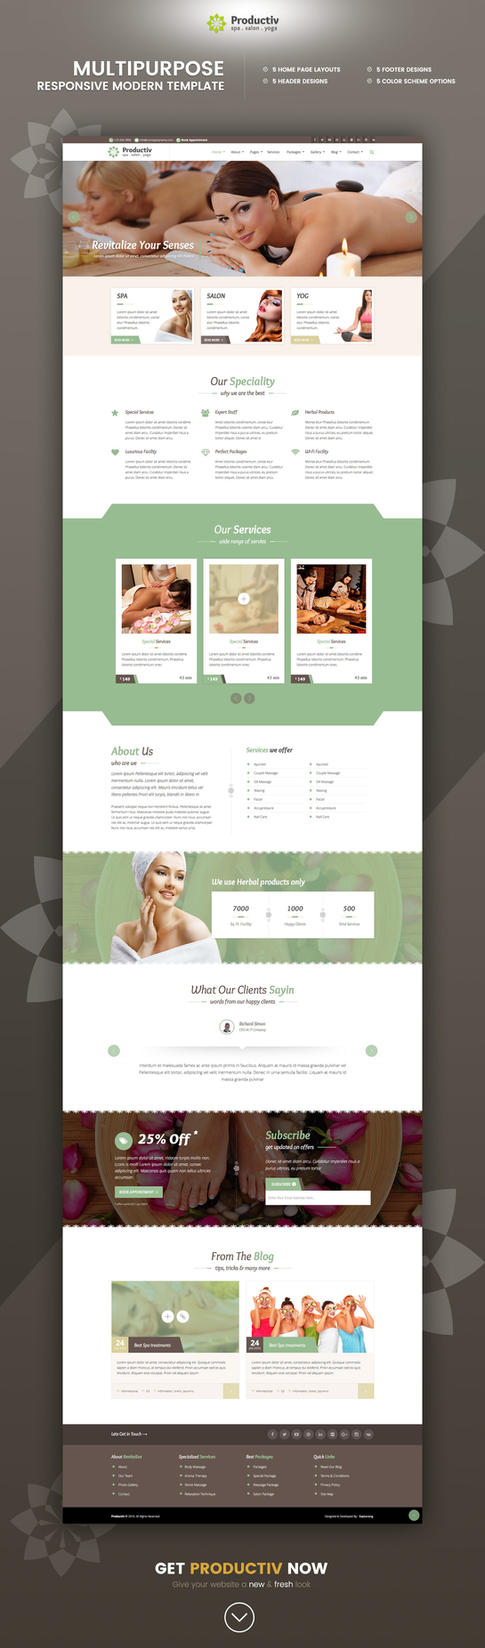 Productiv Multipurpose Responsive HTML Template by Saptarang